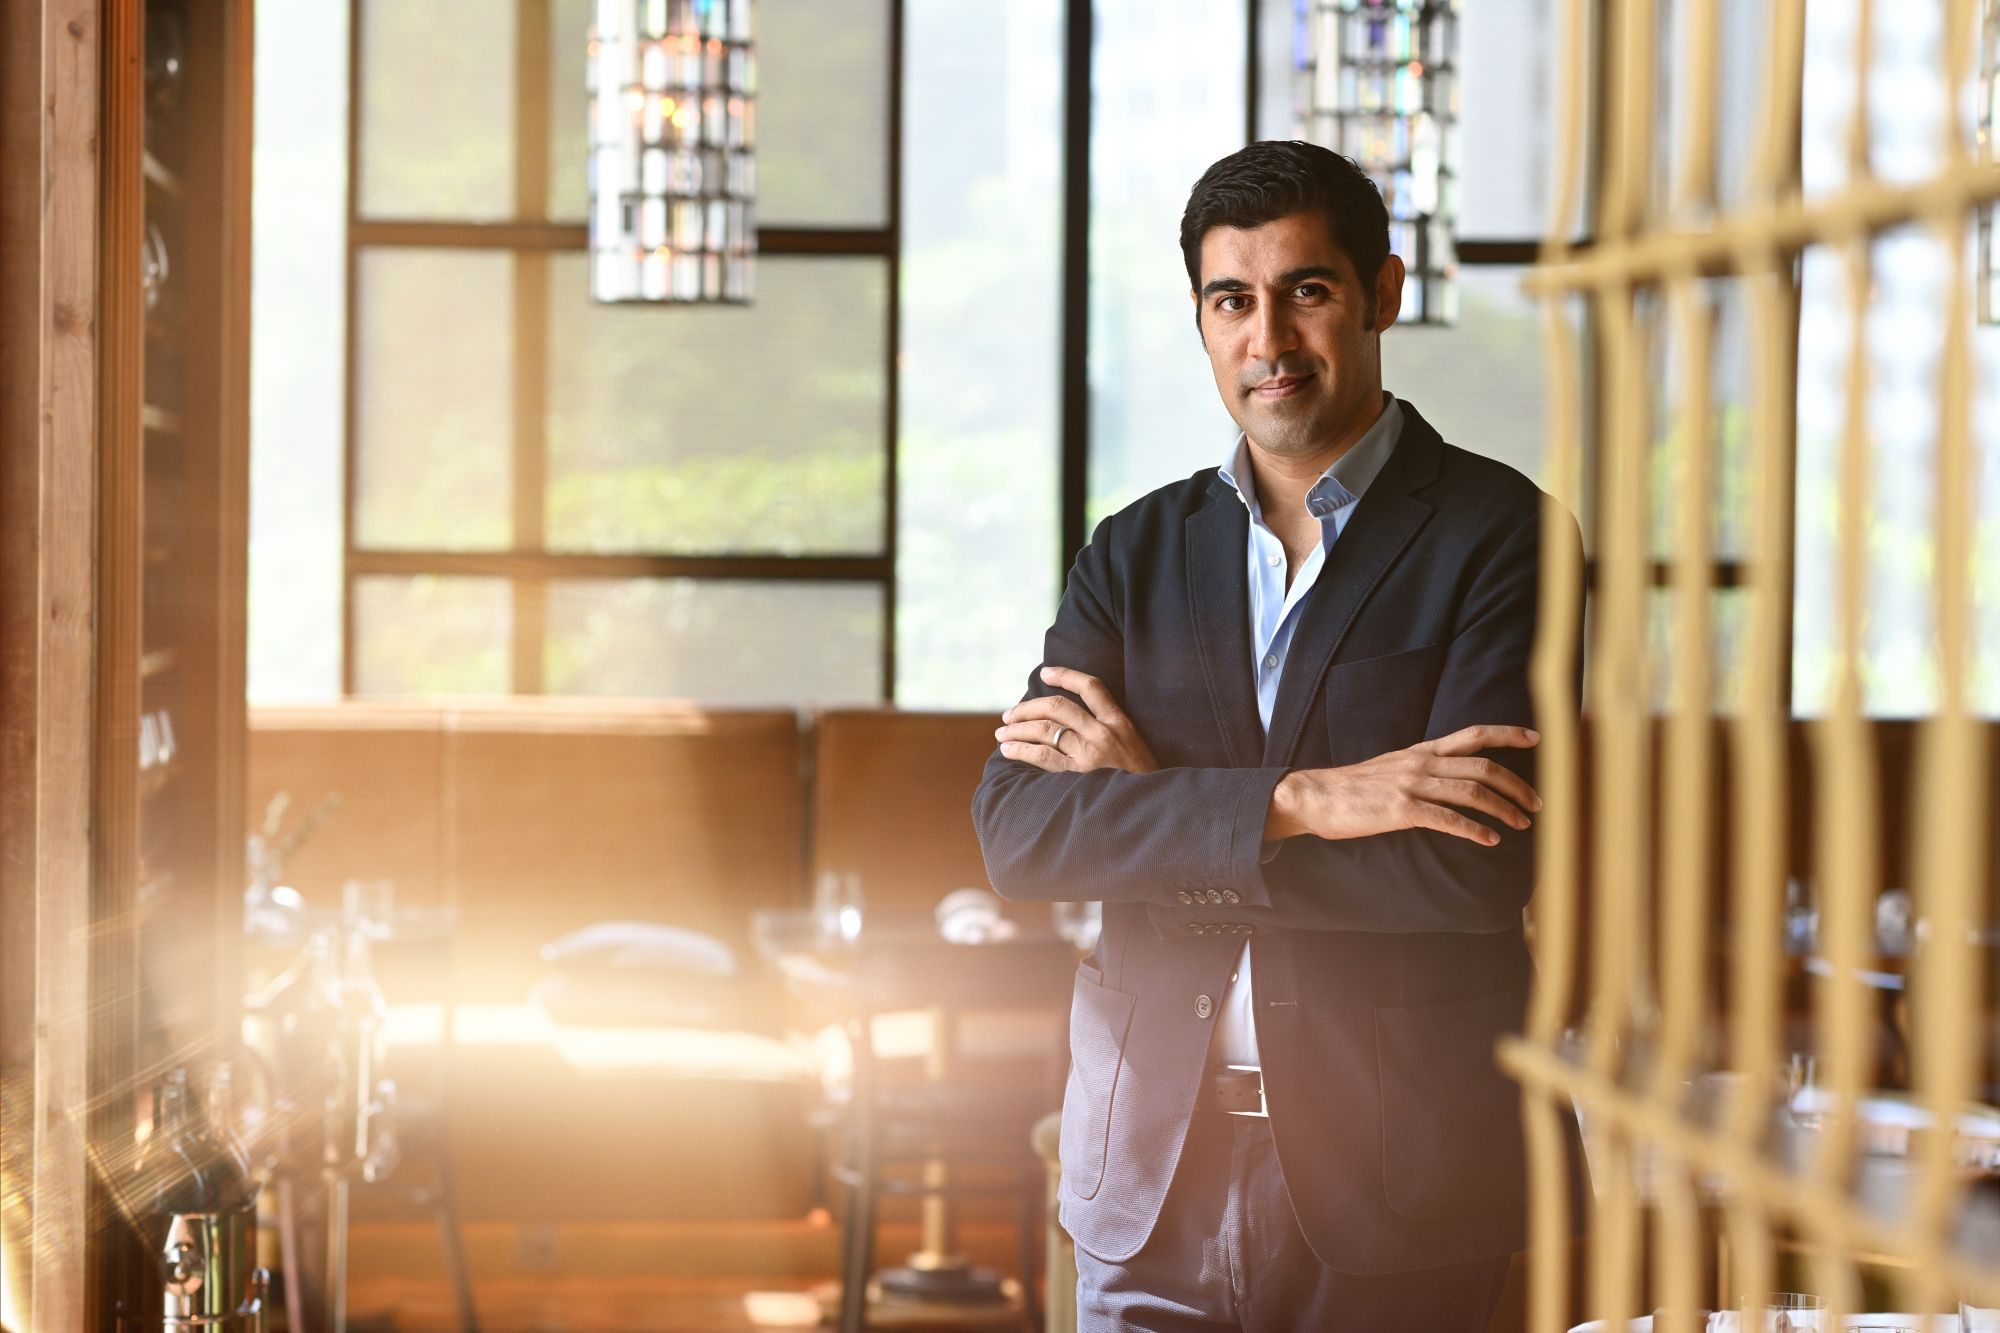 5 Things To Know About Global Strategist Parag Khanna